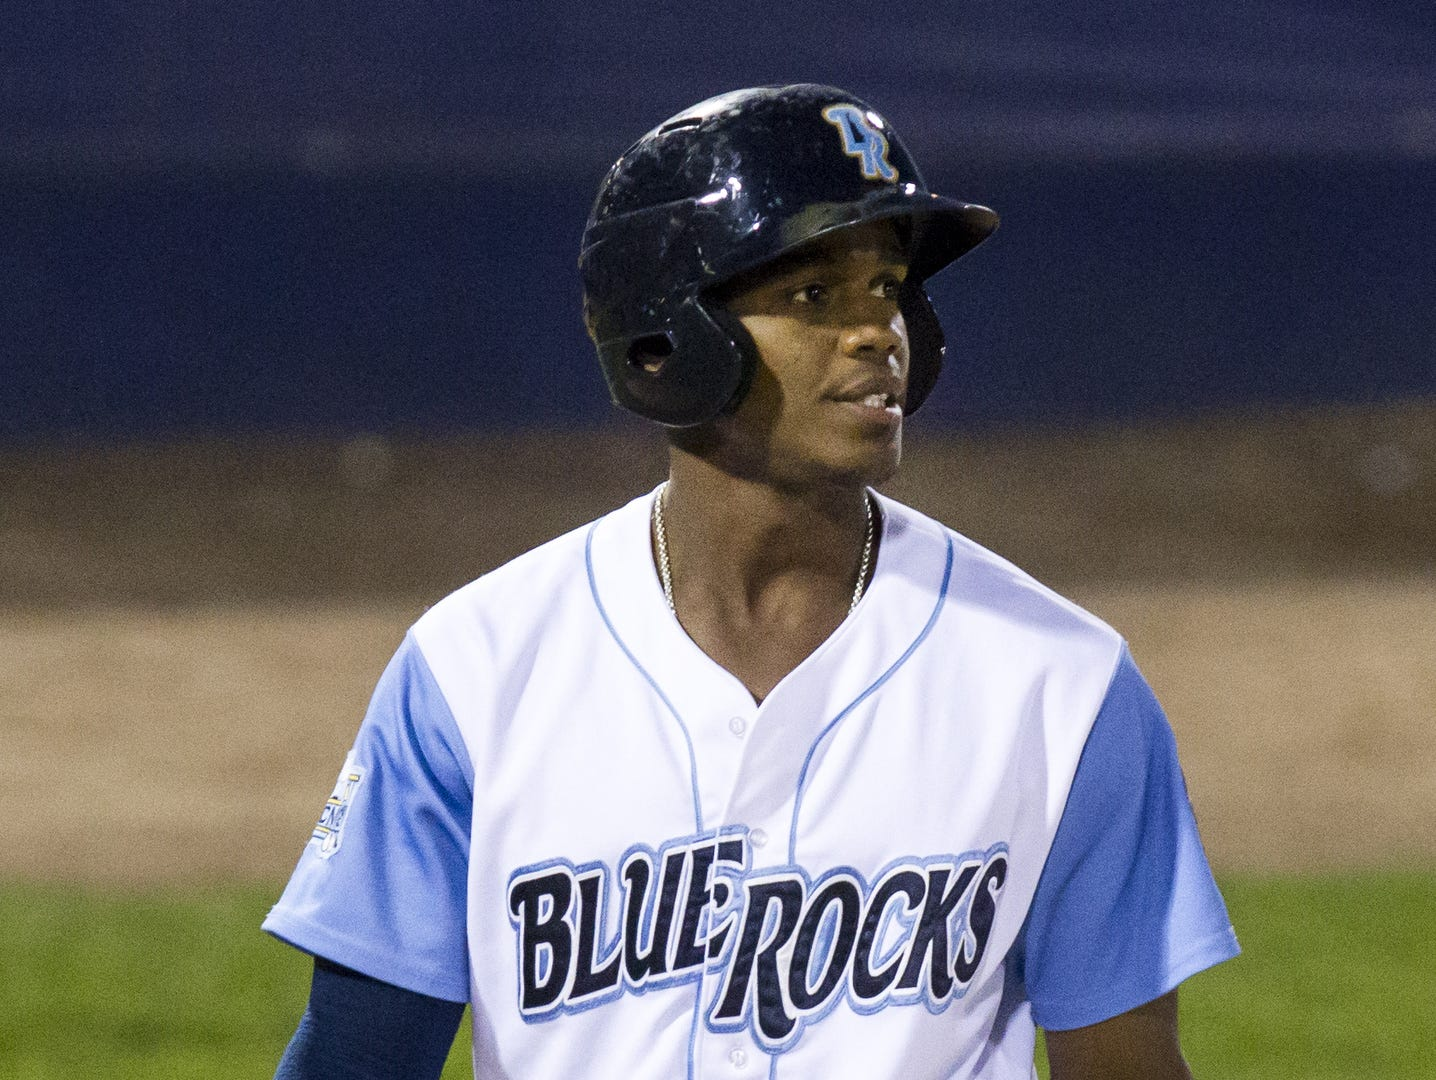 Wilmington Blue Rocks right fielder Elier Henandez looks to the scoreboard after striking out during the Blue Rocks 2-0 loss to the Myrtle Beach Pelicans in the second game of the Mills Cup Championship series at Frawley Stadium in Wilmington, Del. on Monday evening.